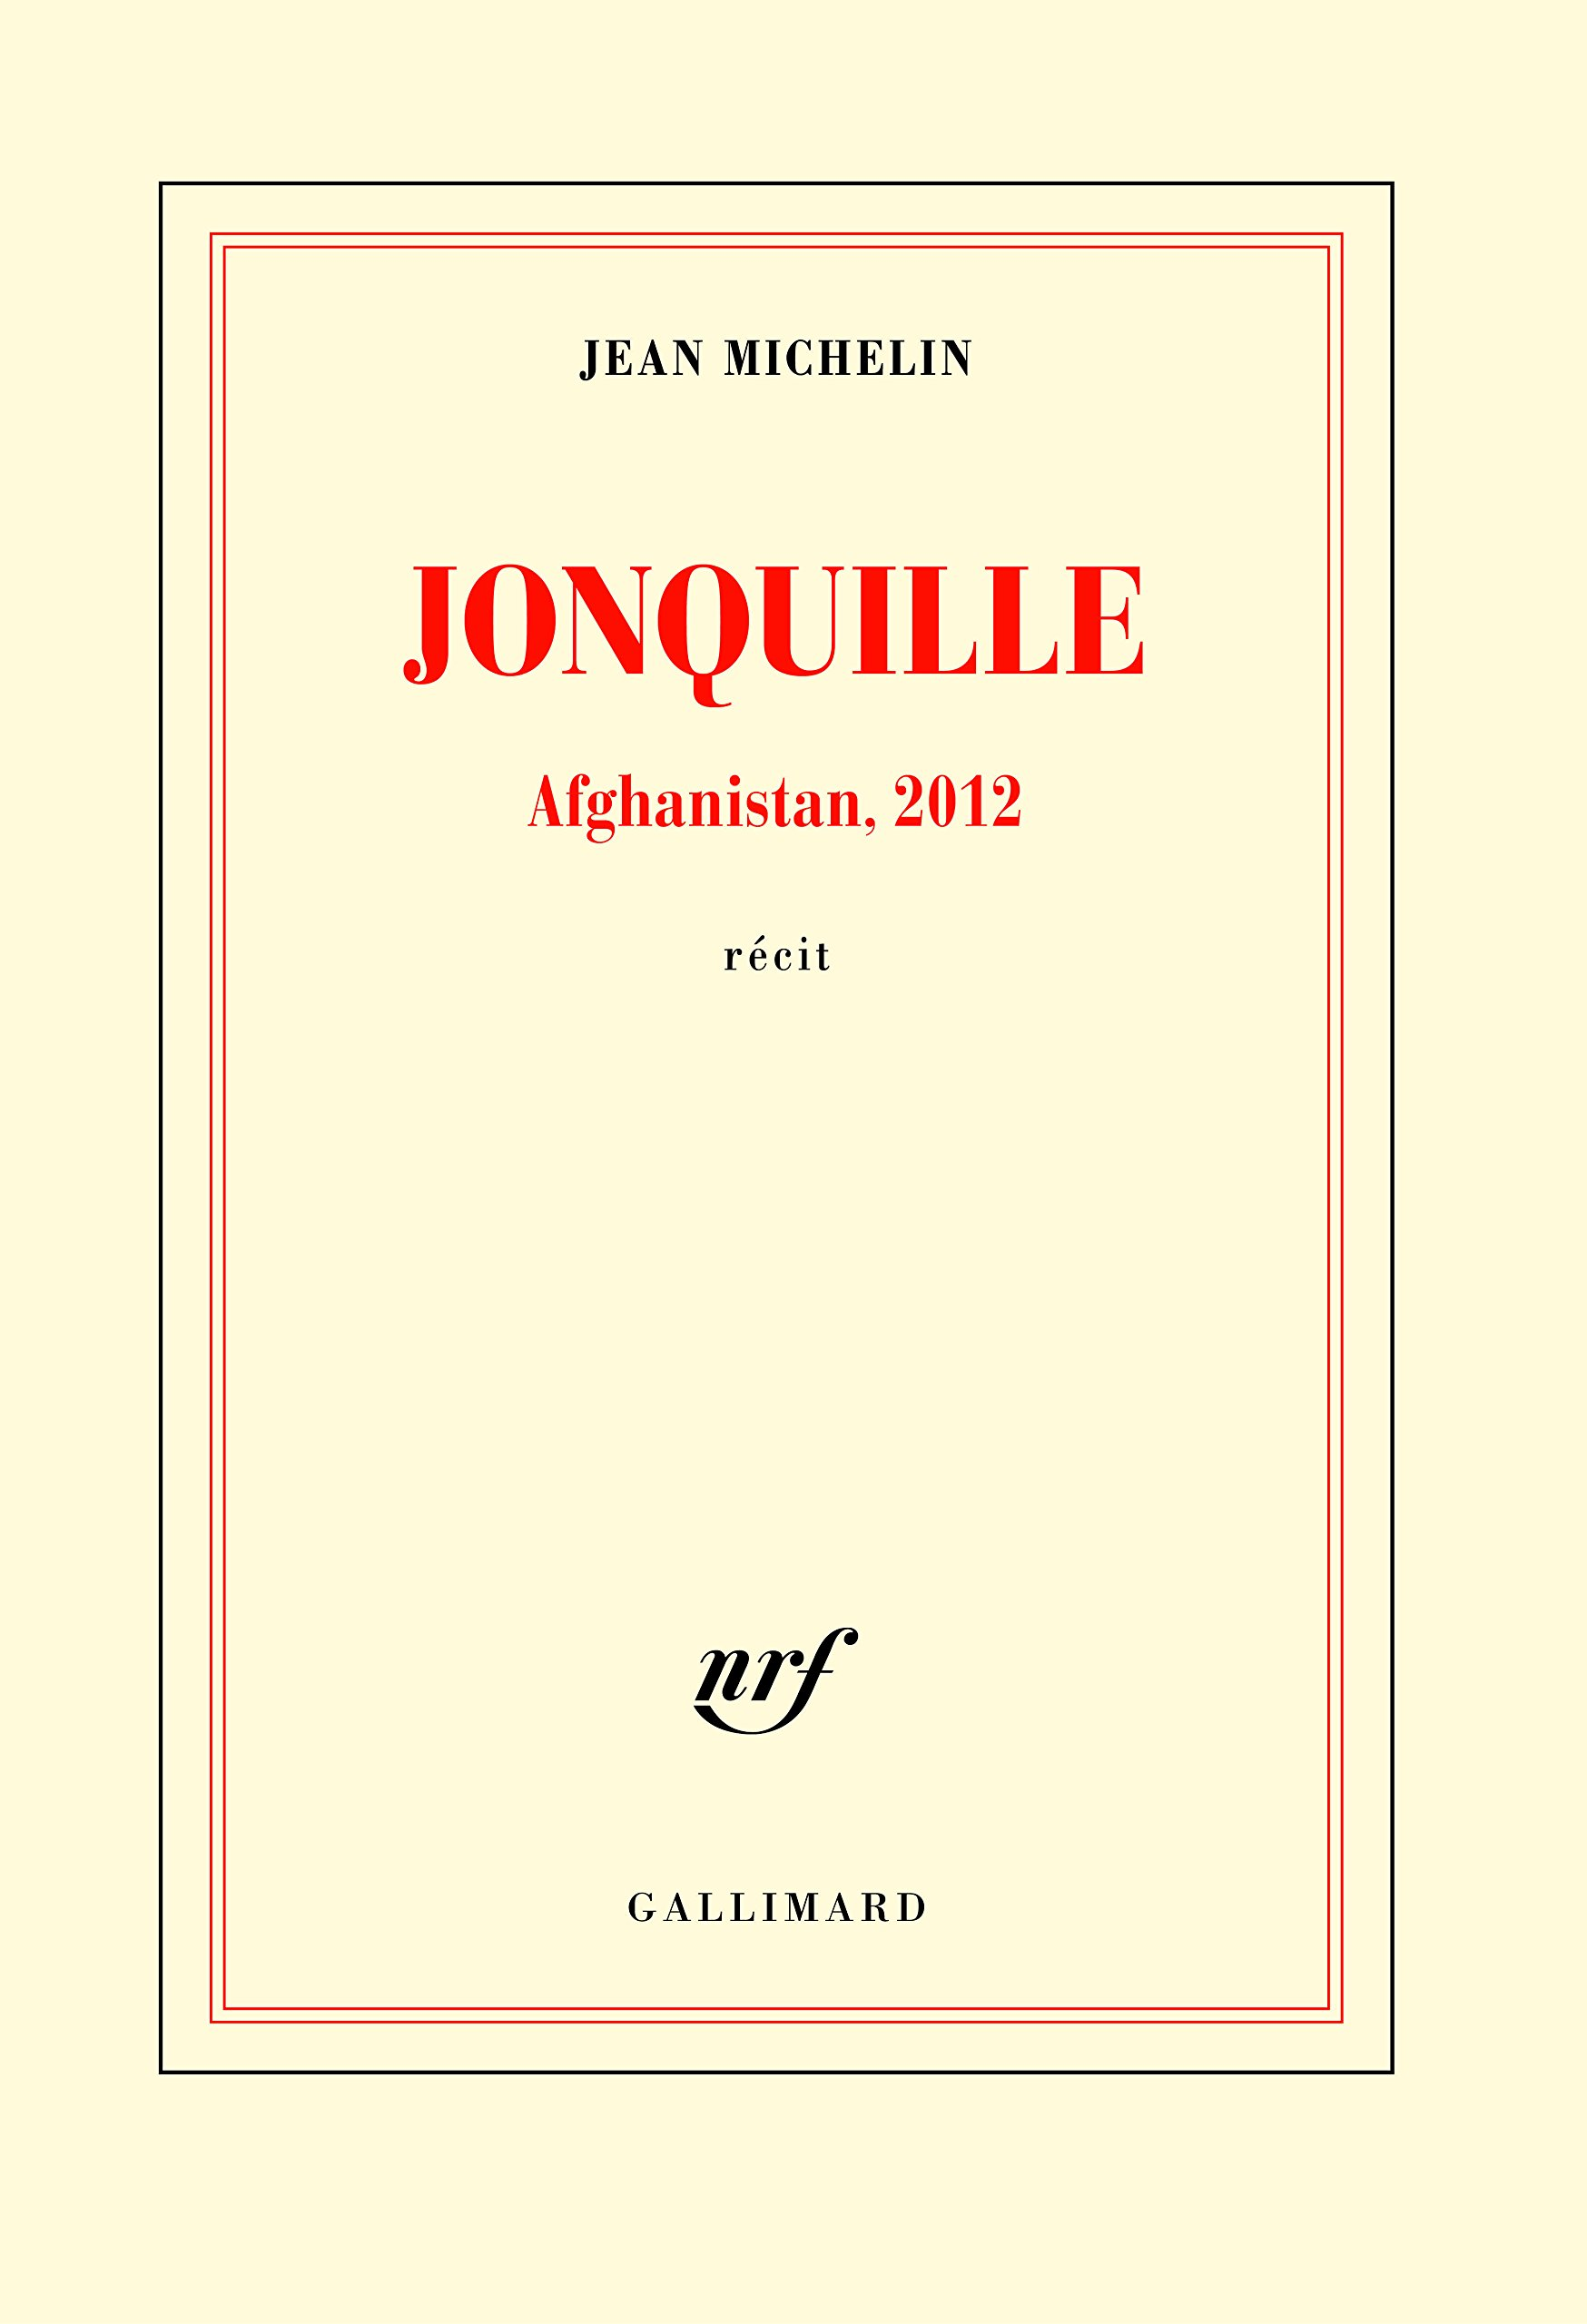 Jean Michelin, Jonquille : Afghanistan, 2012